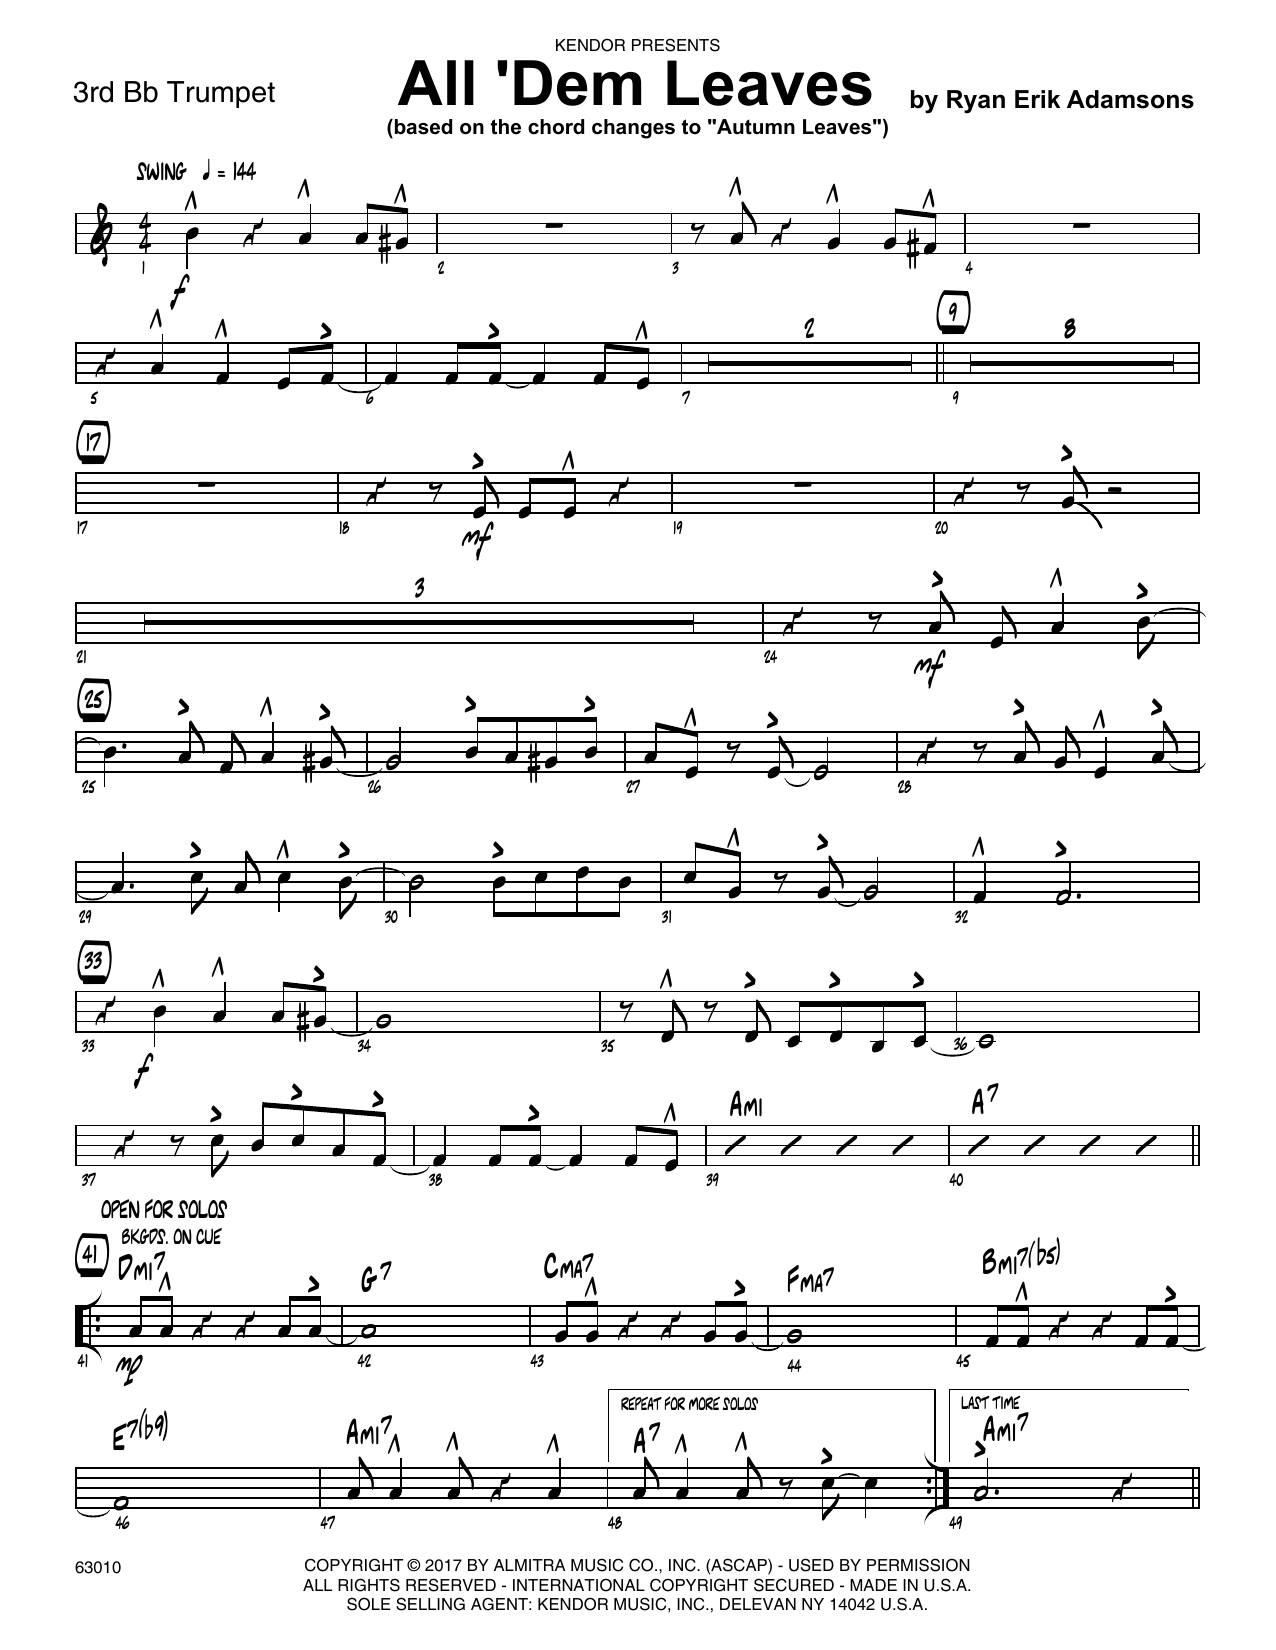 All 'Dem Leaves (based on the chord changes to Autumn Leaves) - 3rd Bb Trumpet Partituras Digitales